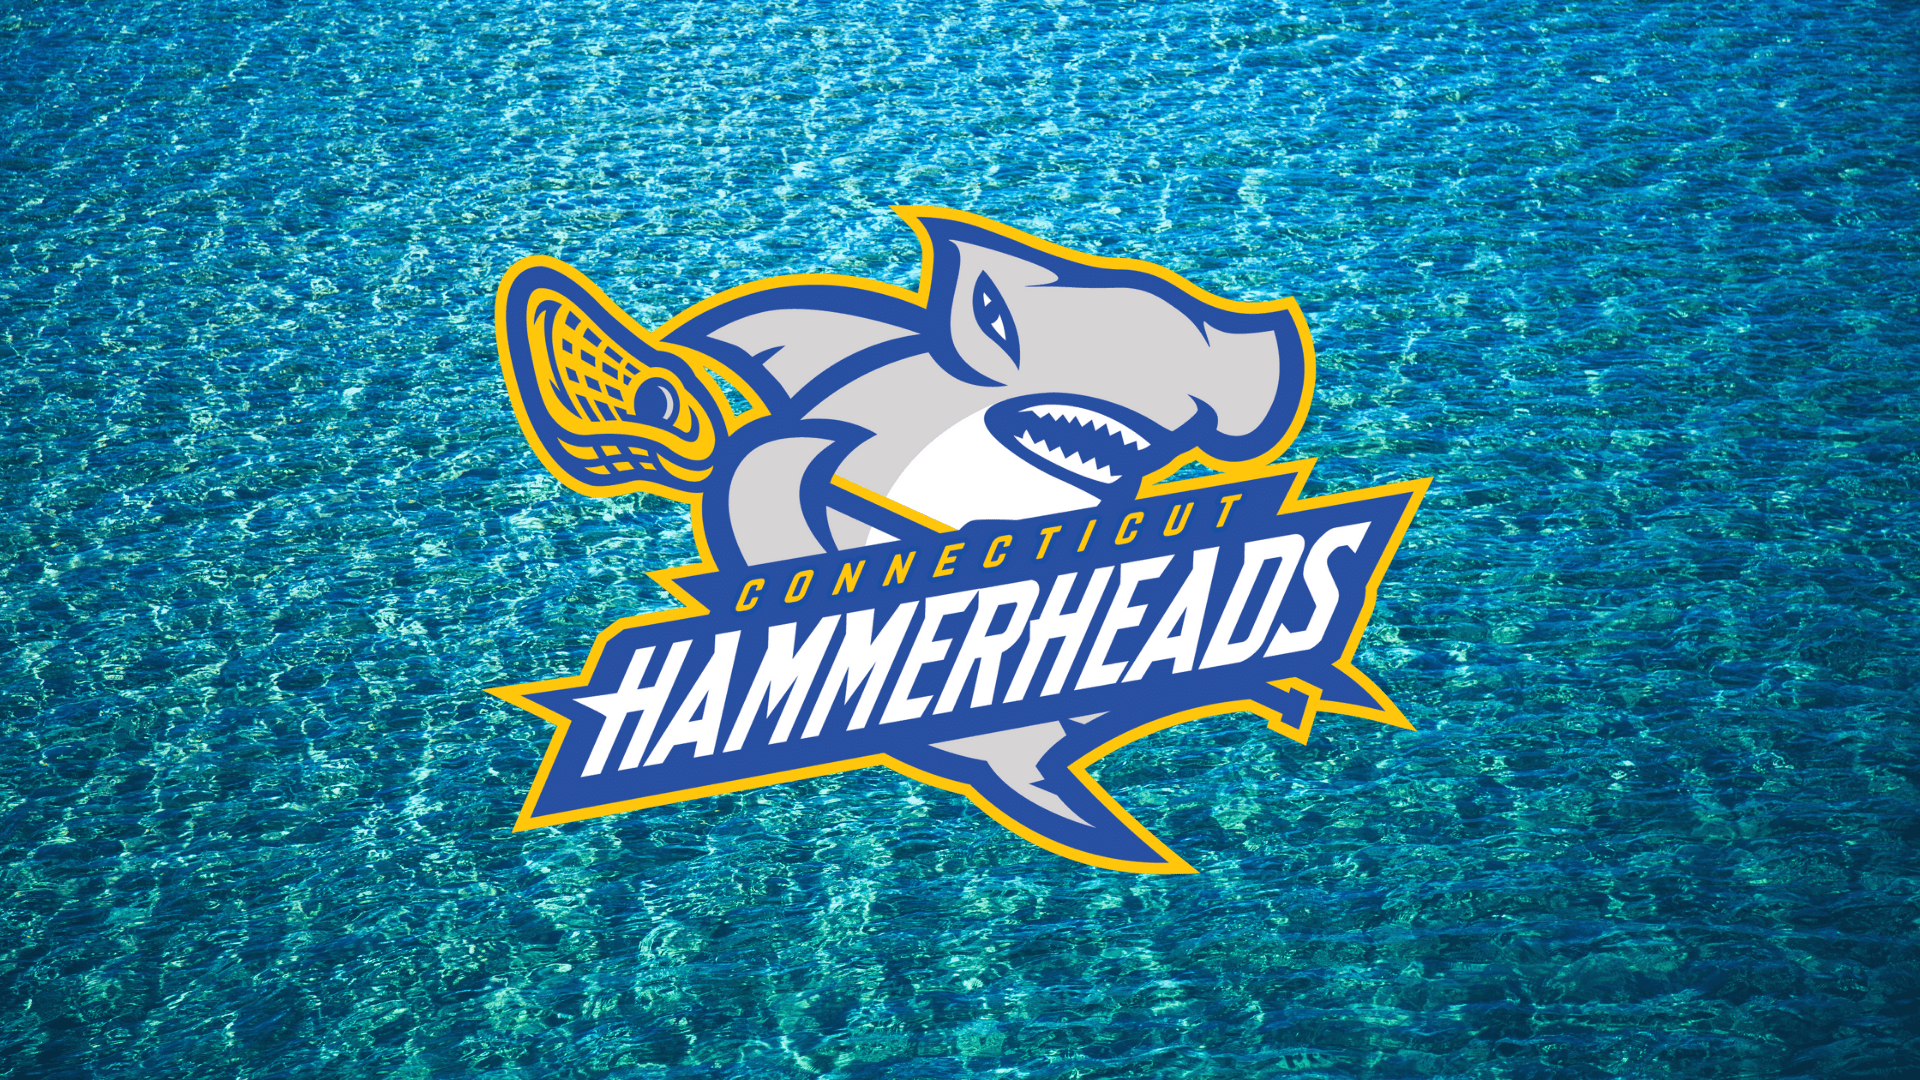 connecticut hammerheads mll major league lacrosse